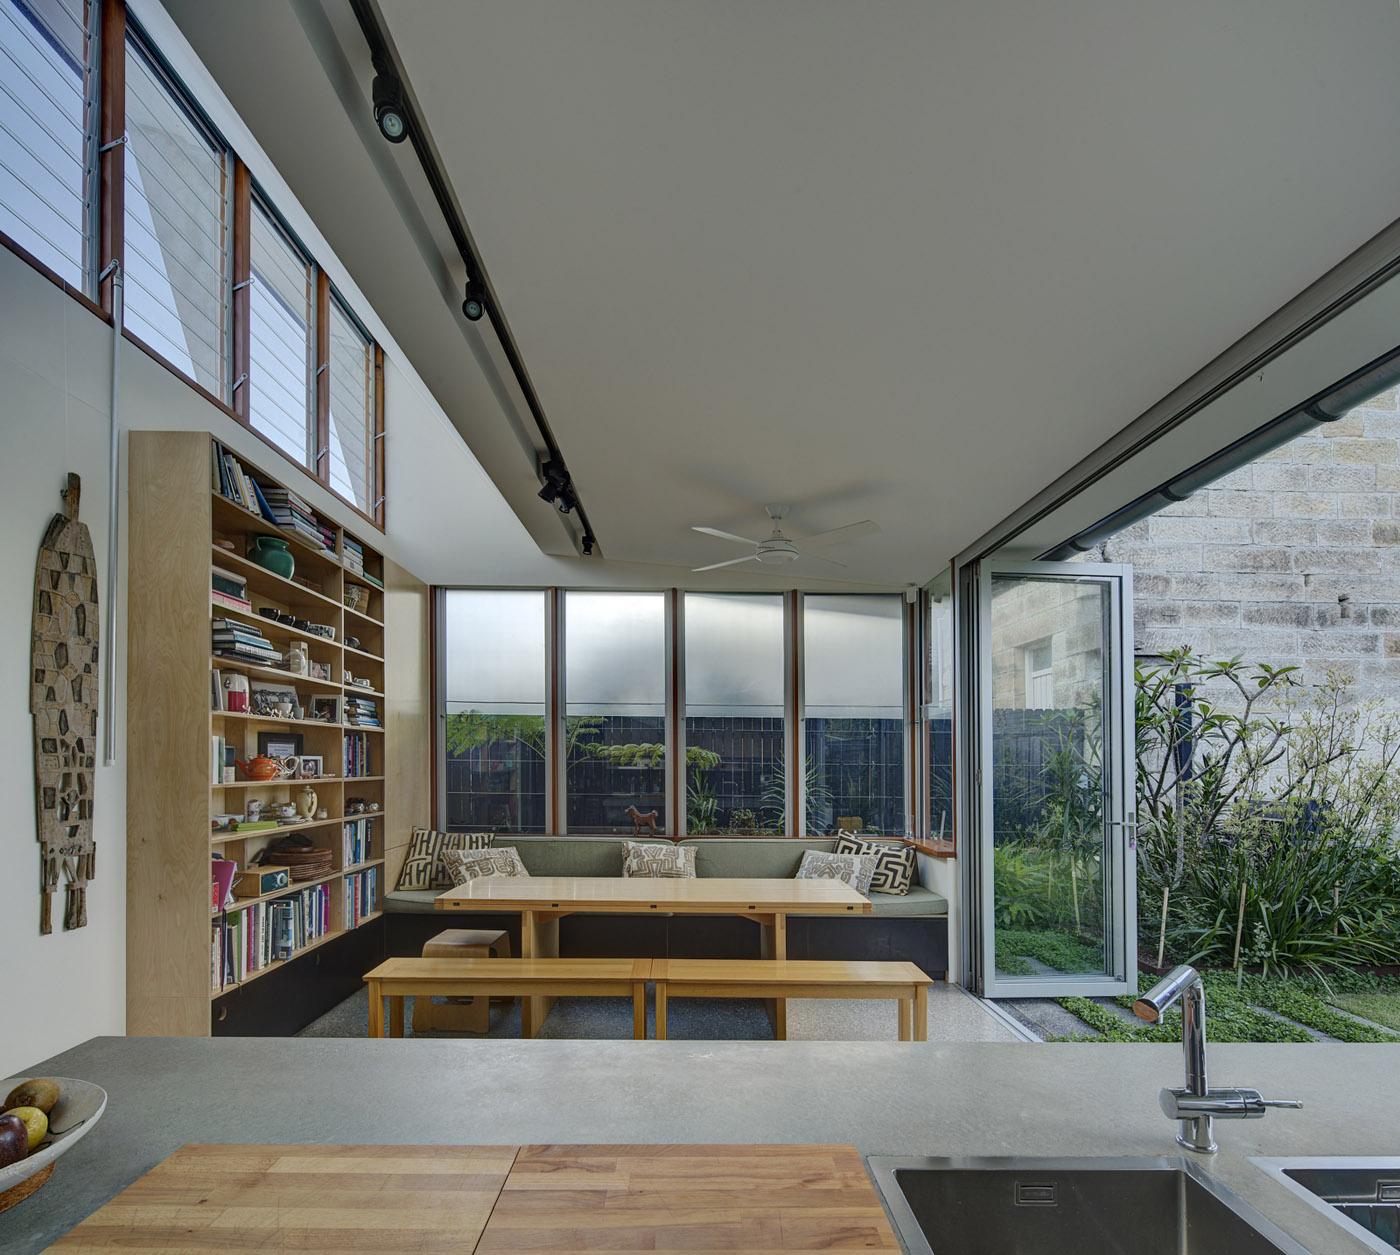 Salgo Kitching House by Sydney award winning architecture office Sam Crawford Architects. View to living area with celestial windows allowing natural light penetration.